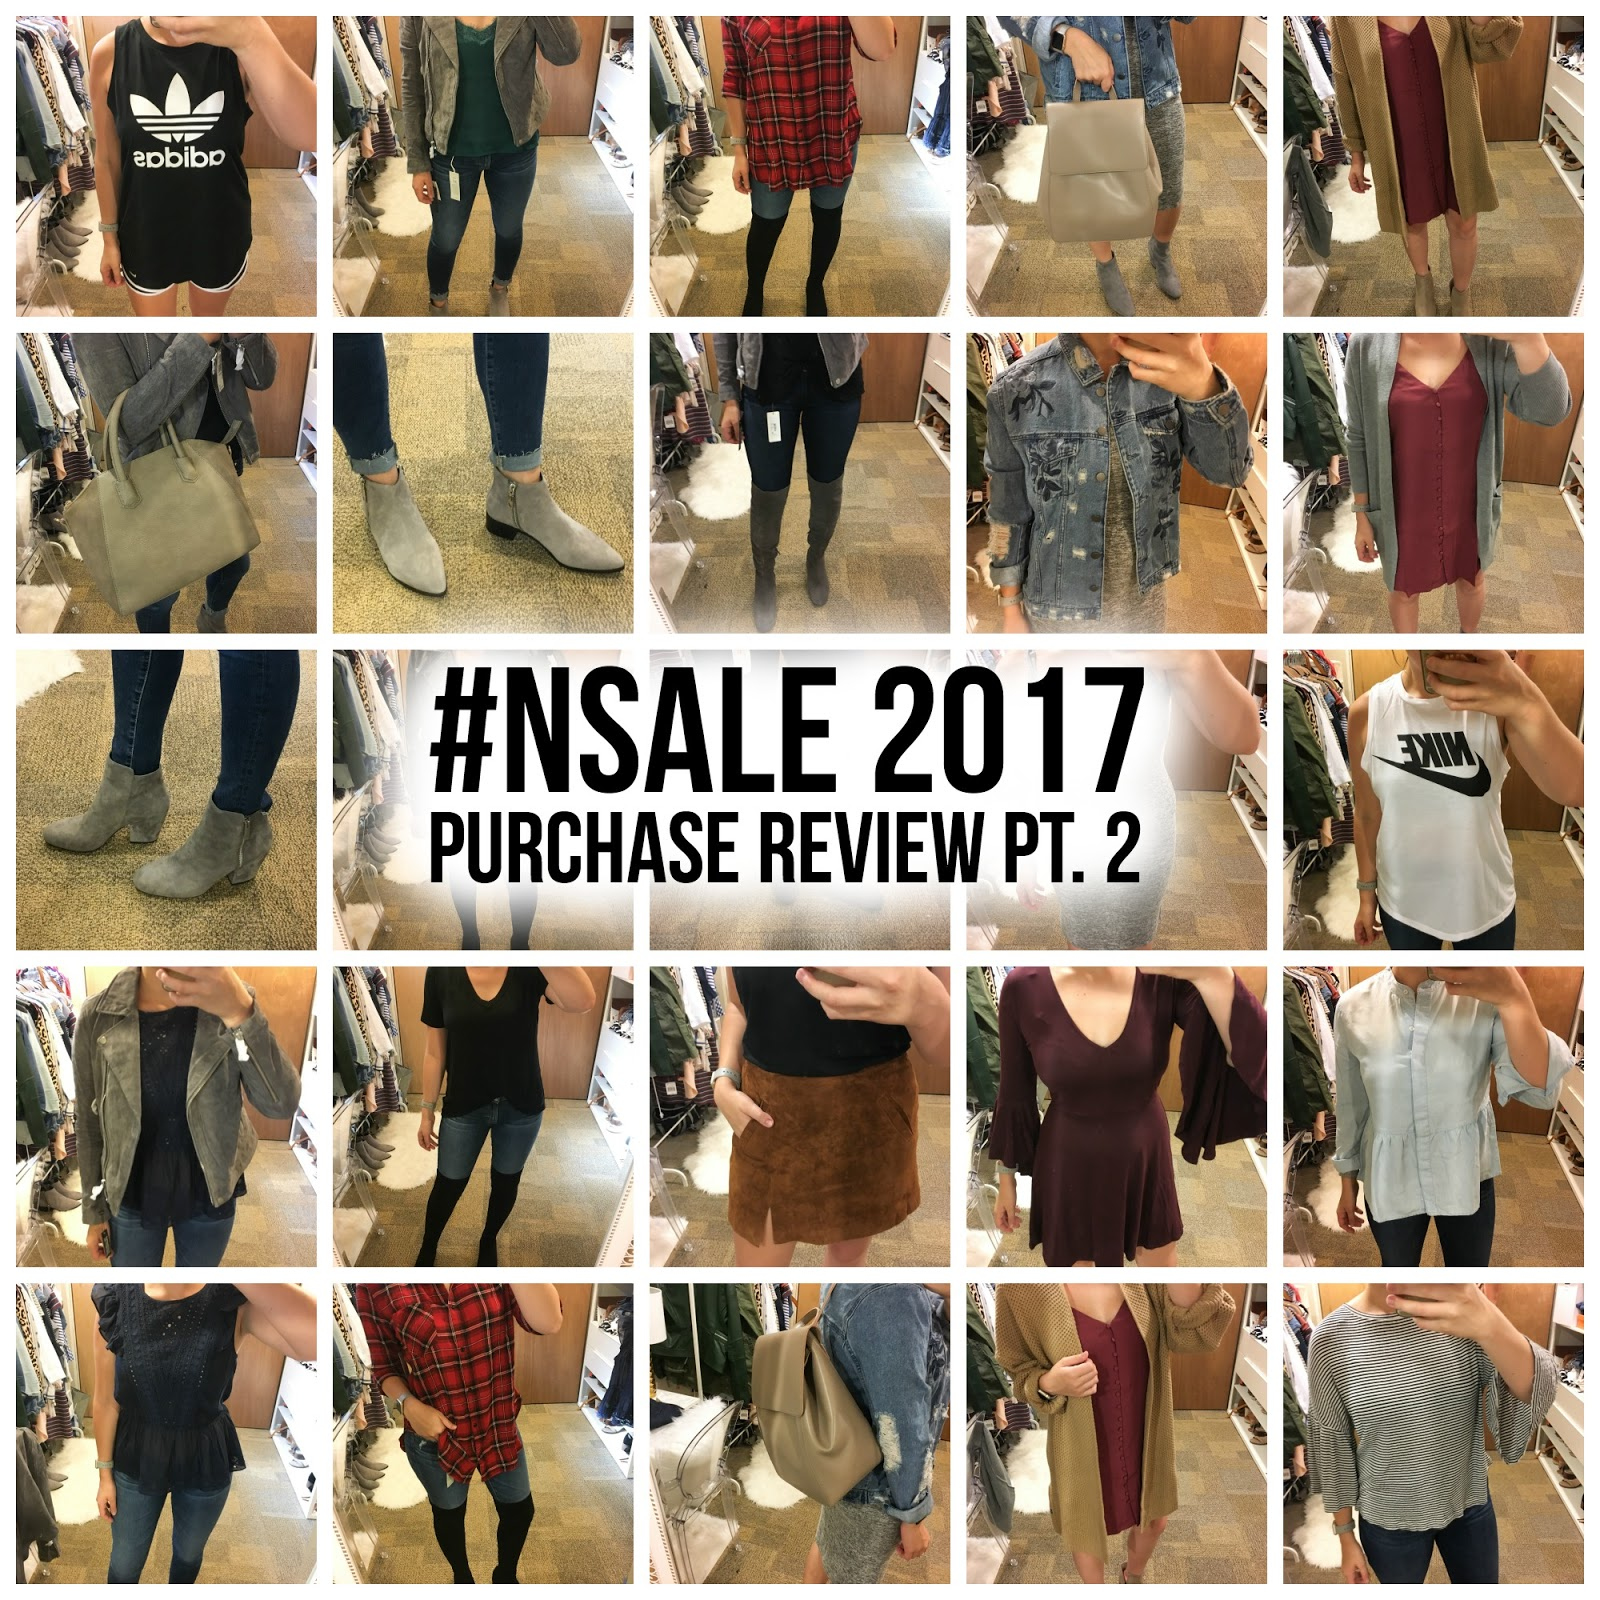 7da95085827 The Black Barcode  NORDSTROM ANNIVERSARY SALE 2017 PURCHASE REVIEW PT. 2